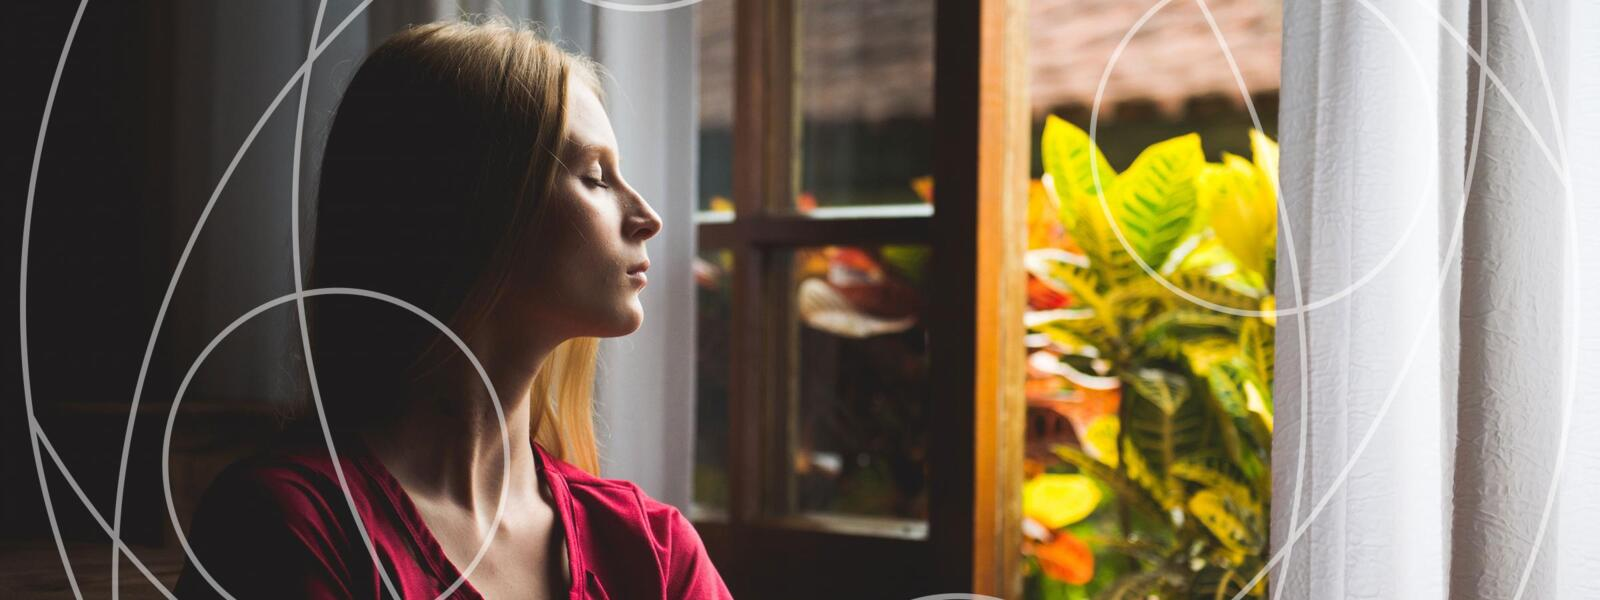 Woman sits by an open window, eyes closed, meditating